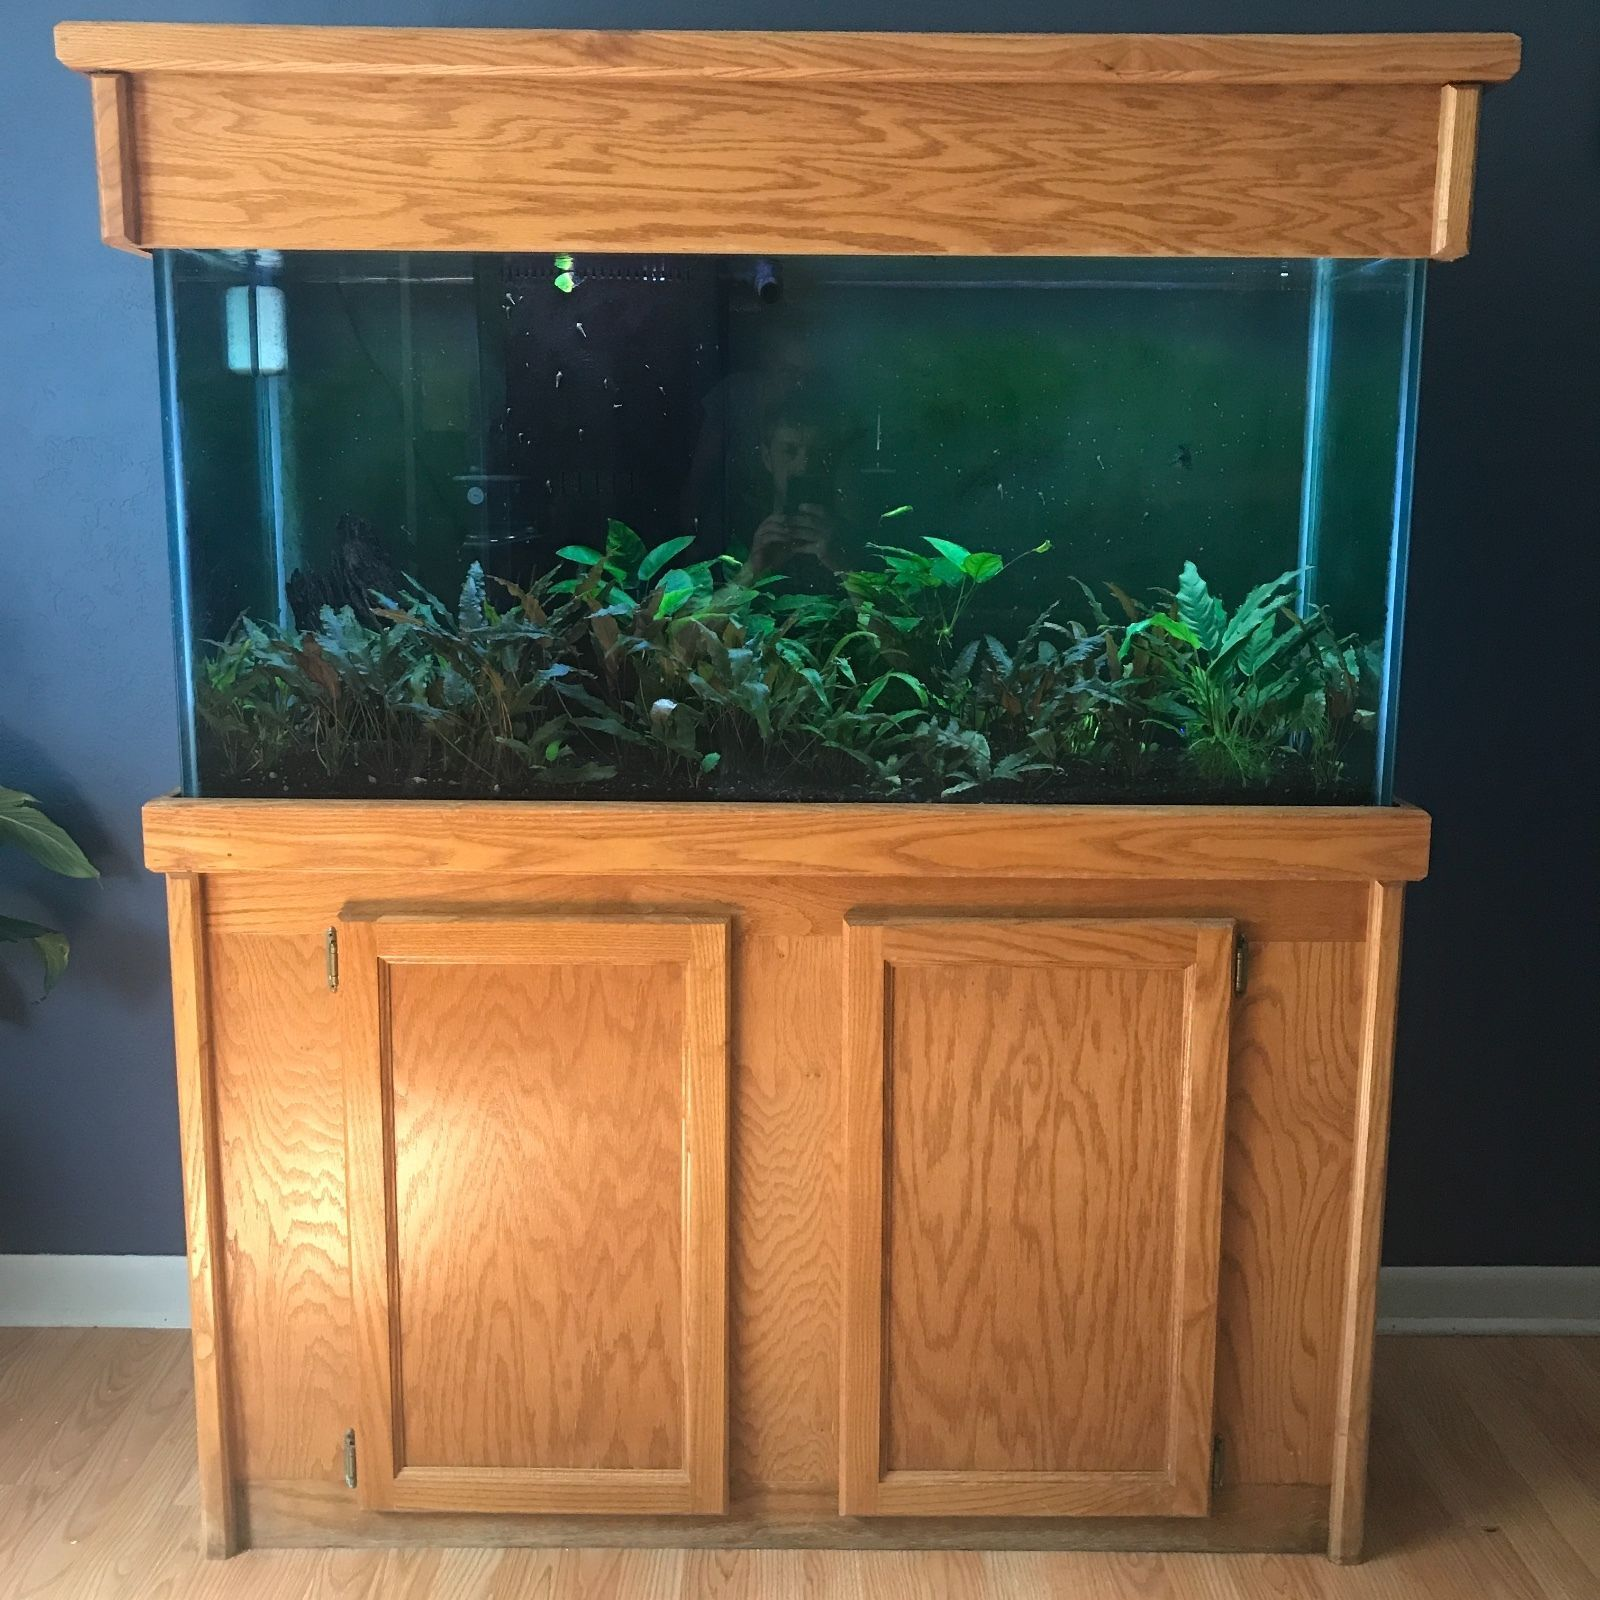 Aquarium Tank Setup Home idea Pinterest